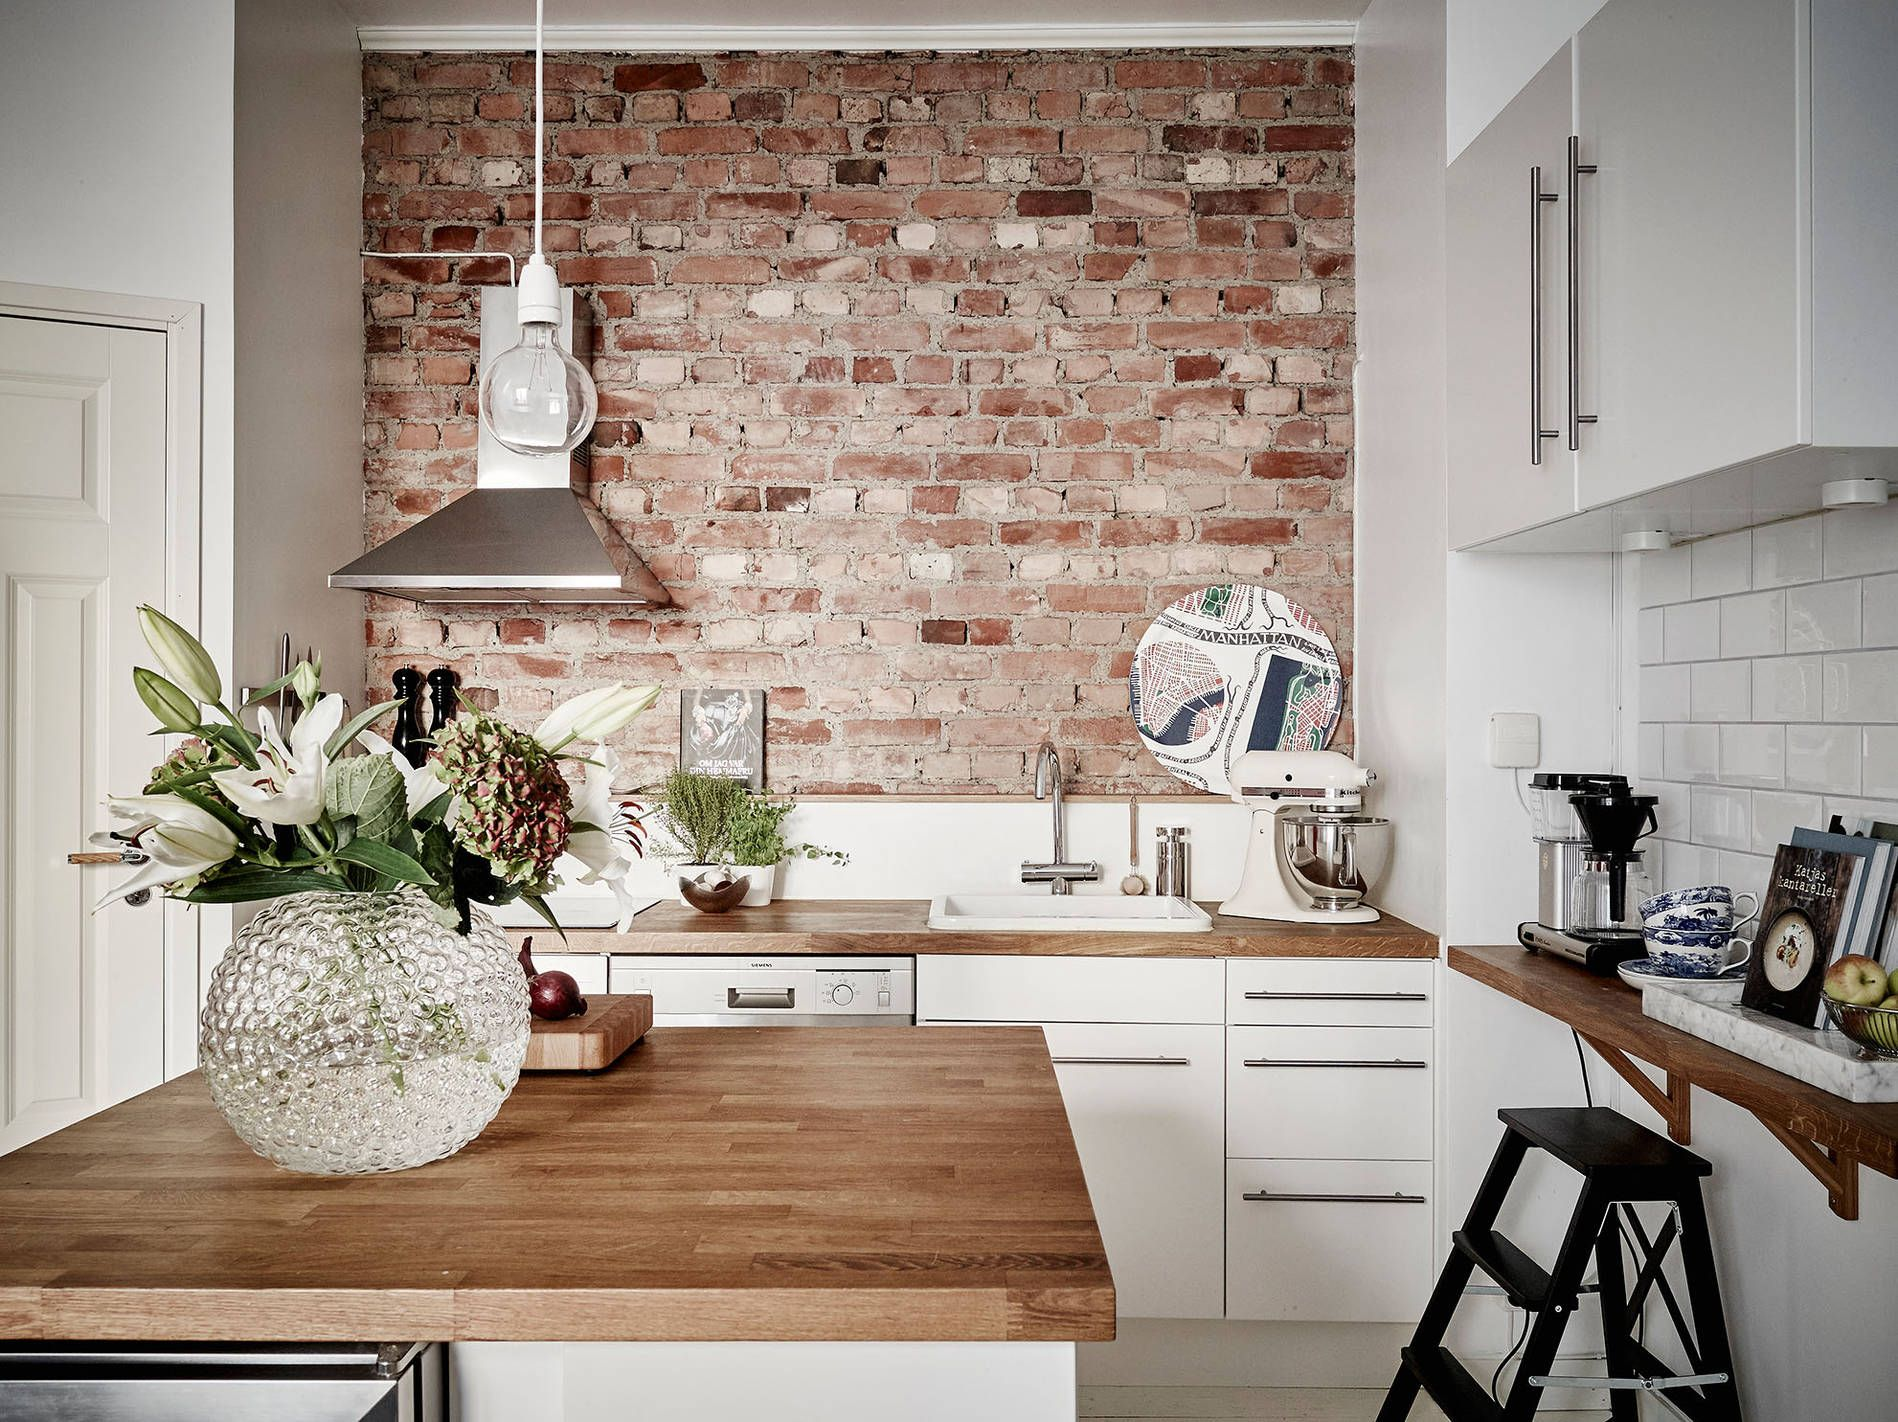 Pin By Ann Marie Alatsas On La Cucina Che Vorrei Exposed Brick Kitchen Brick Wall Kitchen Brick Kitchen